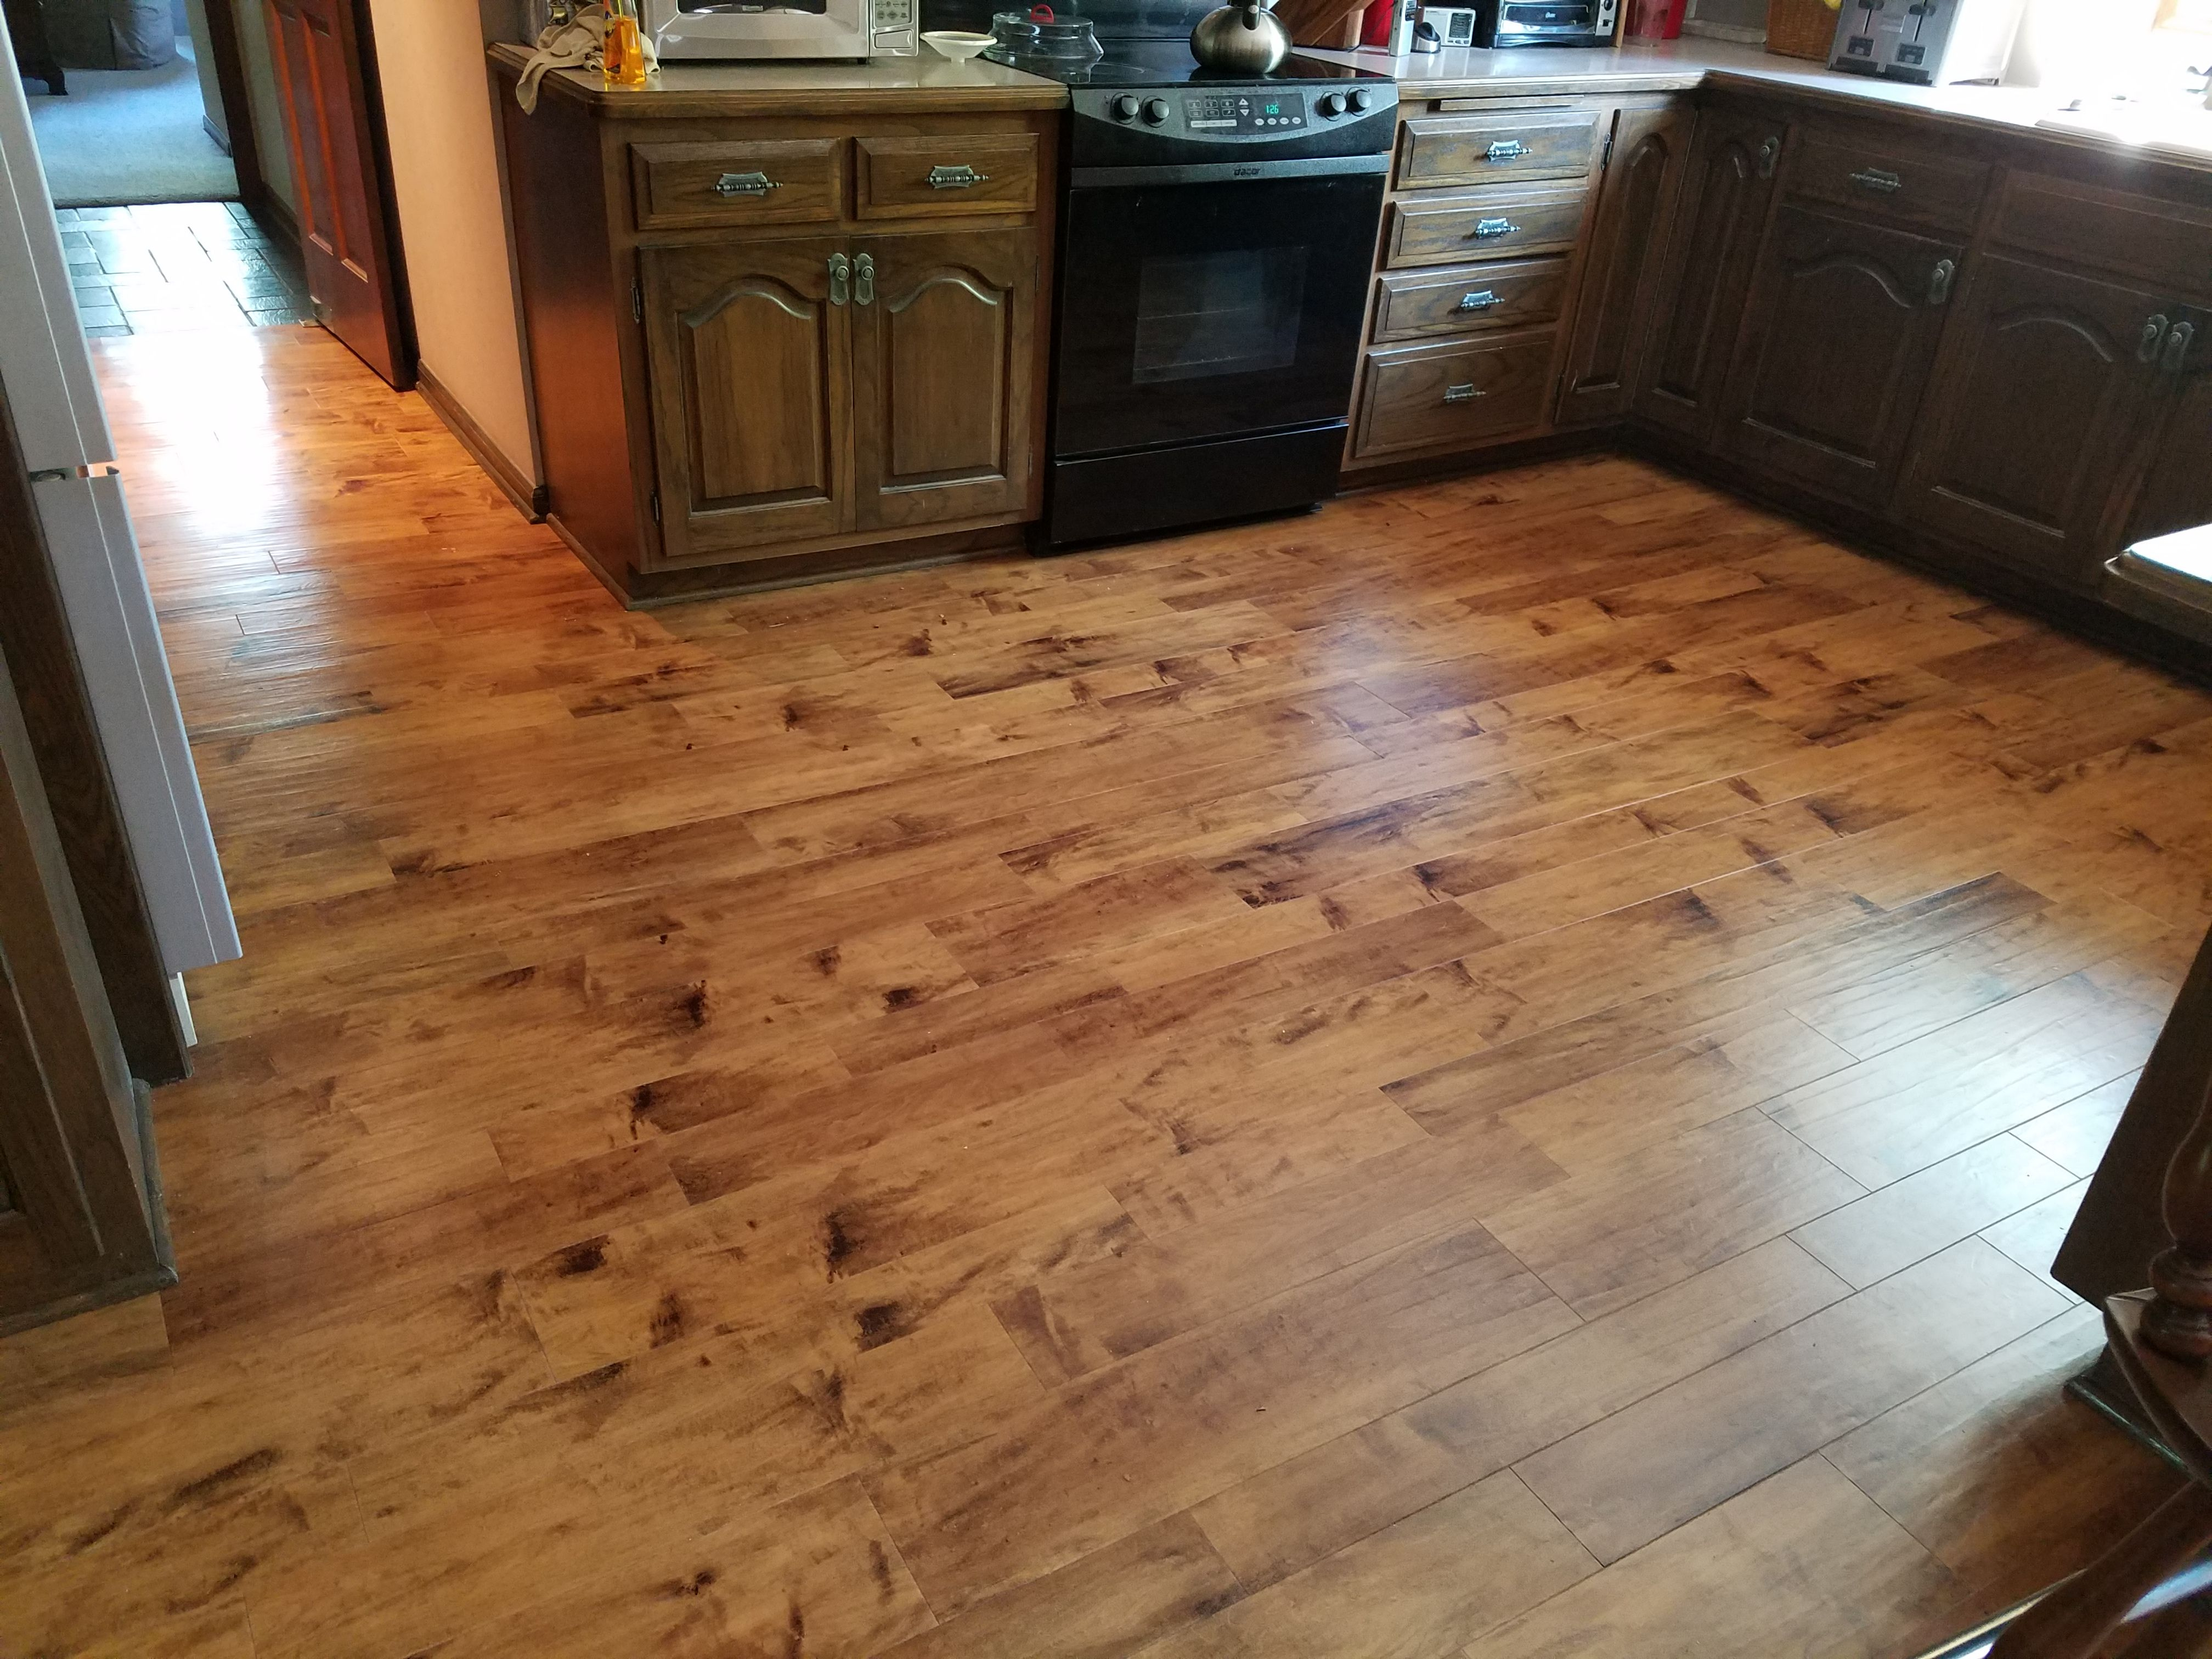 Kardean Luxury Vinyl Plank Toasted Almond Color Welcome To Floor